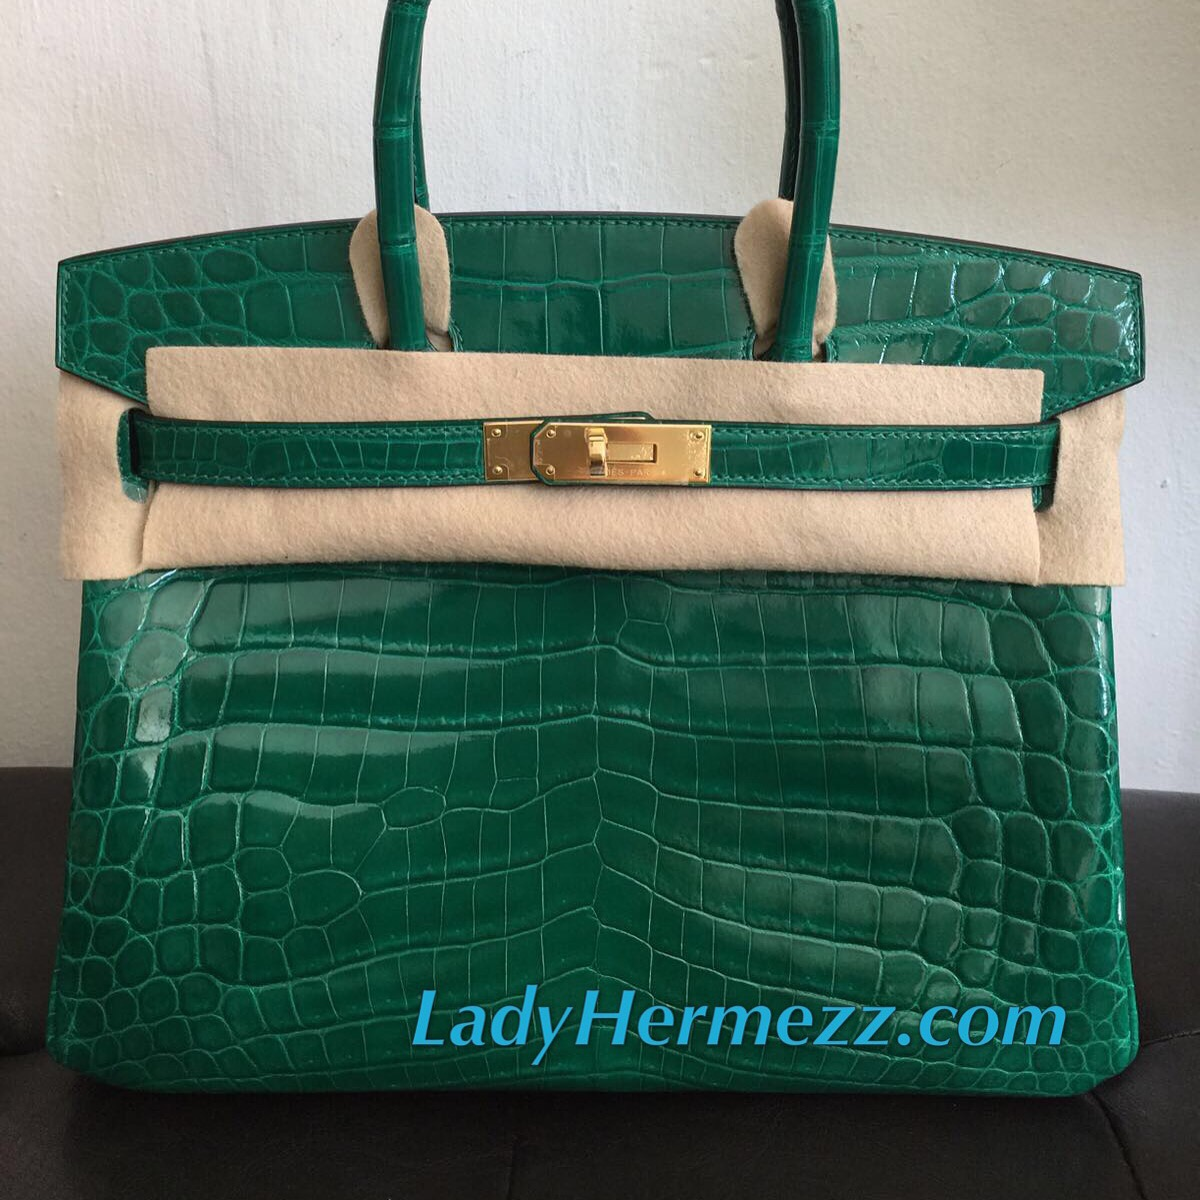 where can i sell replica handbags - LadyHermezz.Com - email: sales@LadyHermezz.Com